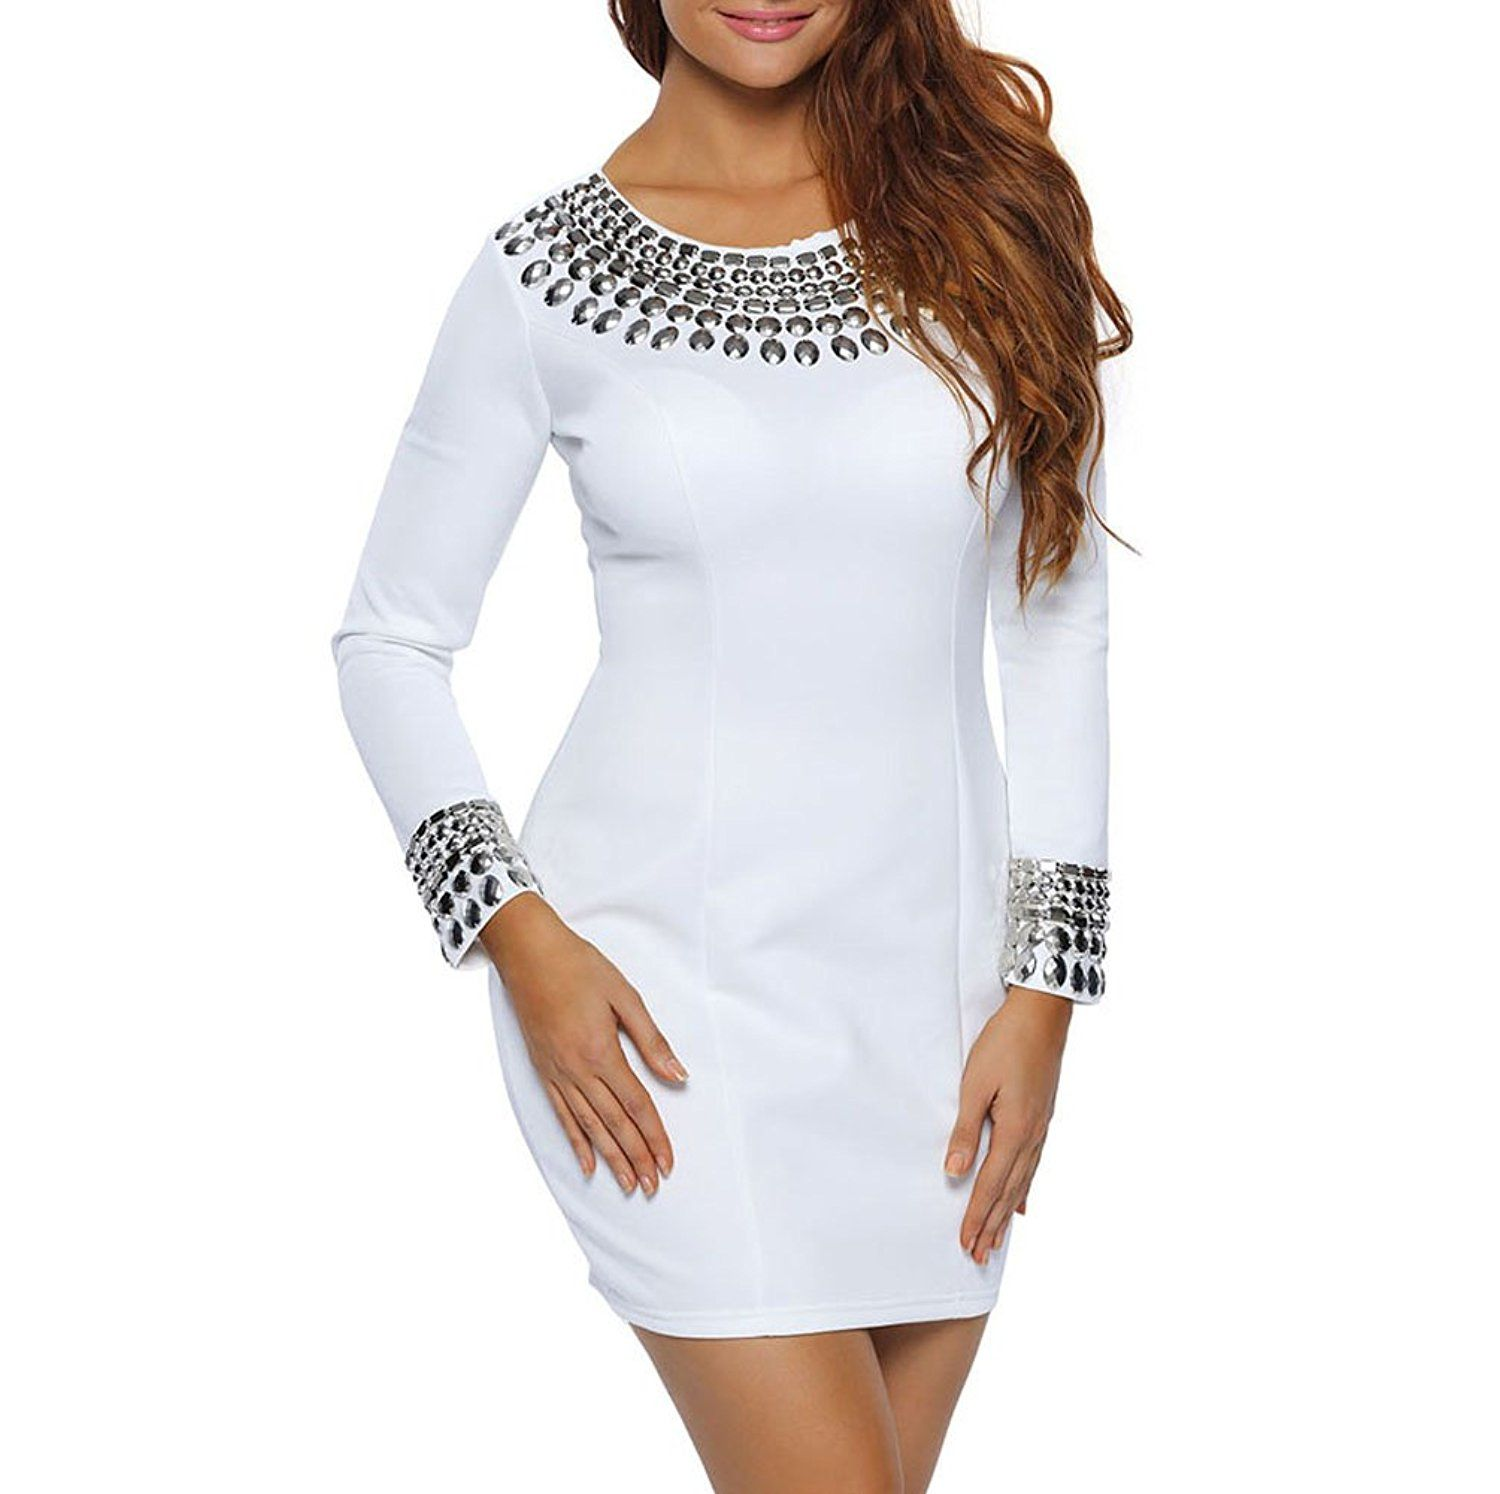 Kqrns womenus long sleeve rivets studded dress for women black